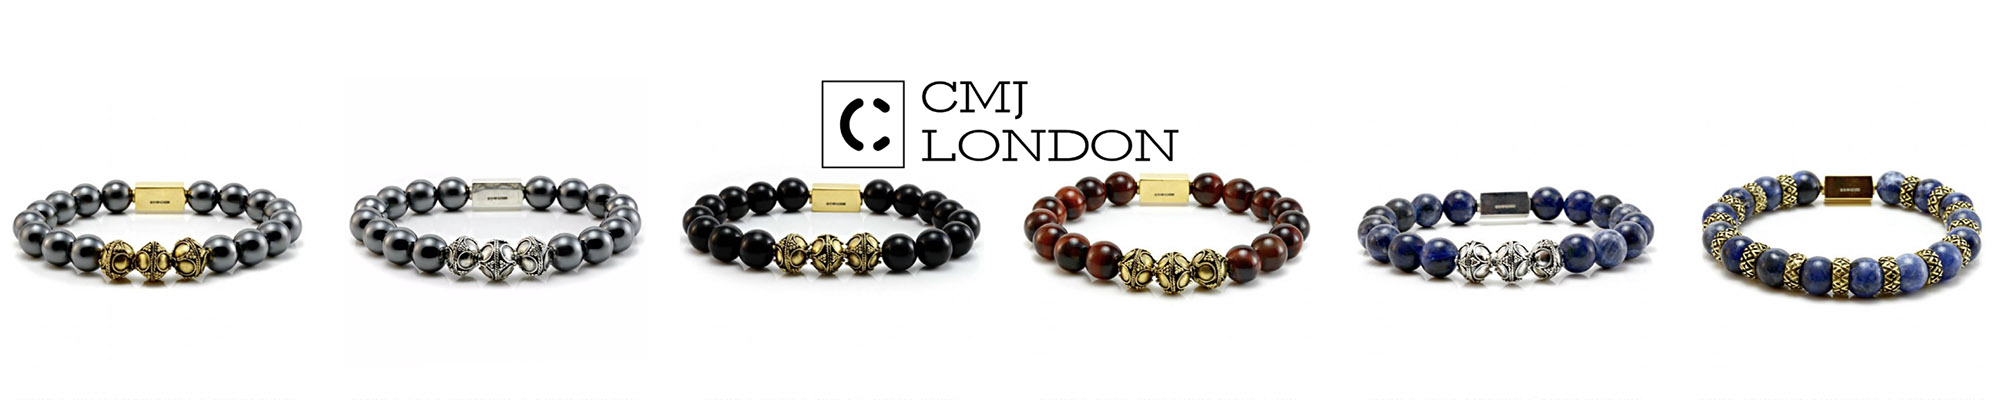 Carla Marie Jewellery banner image